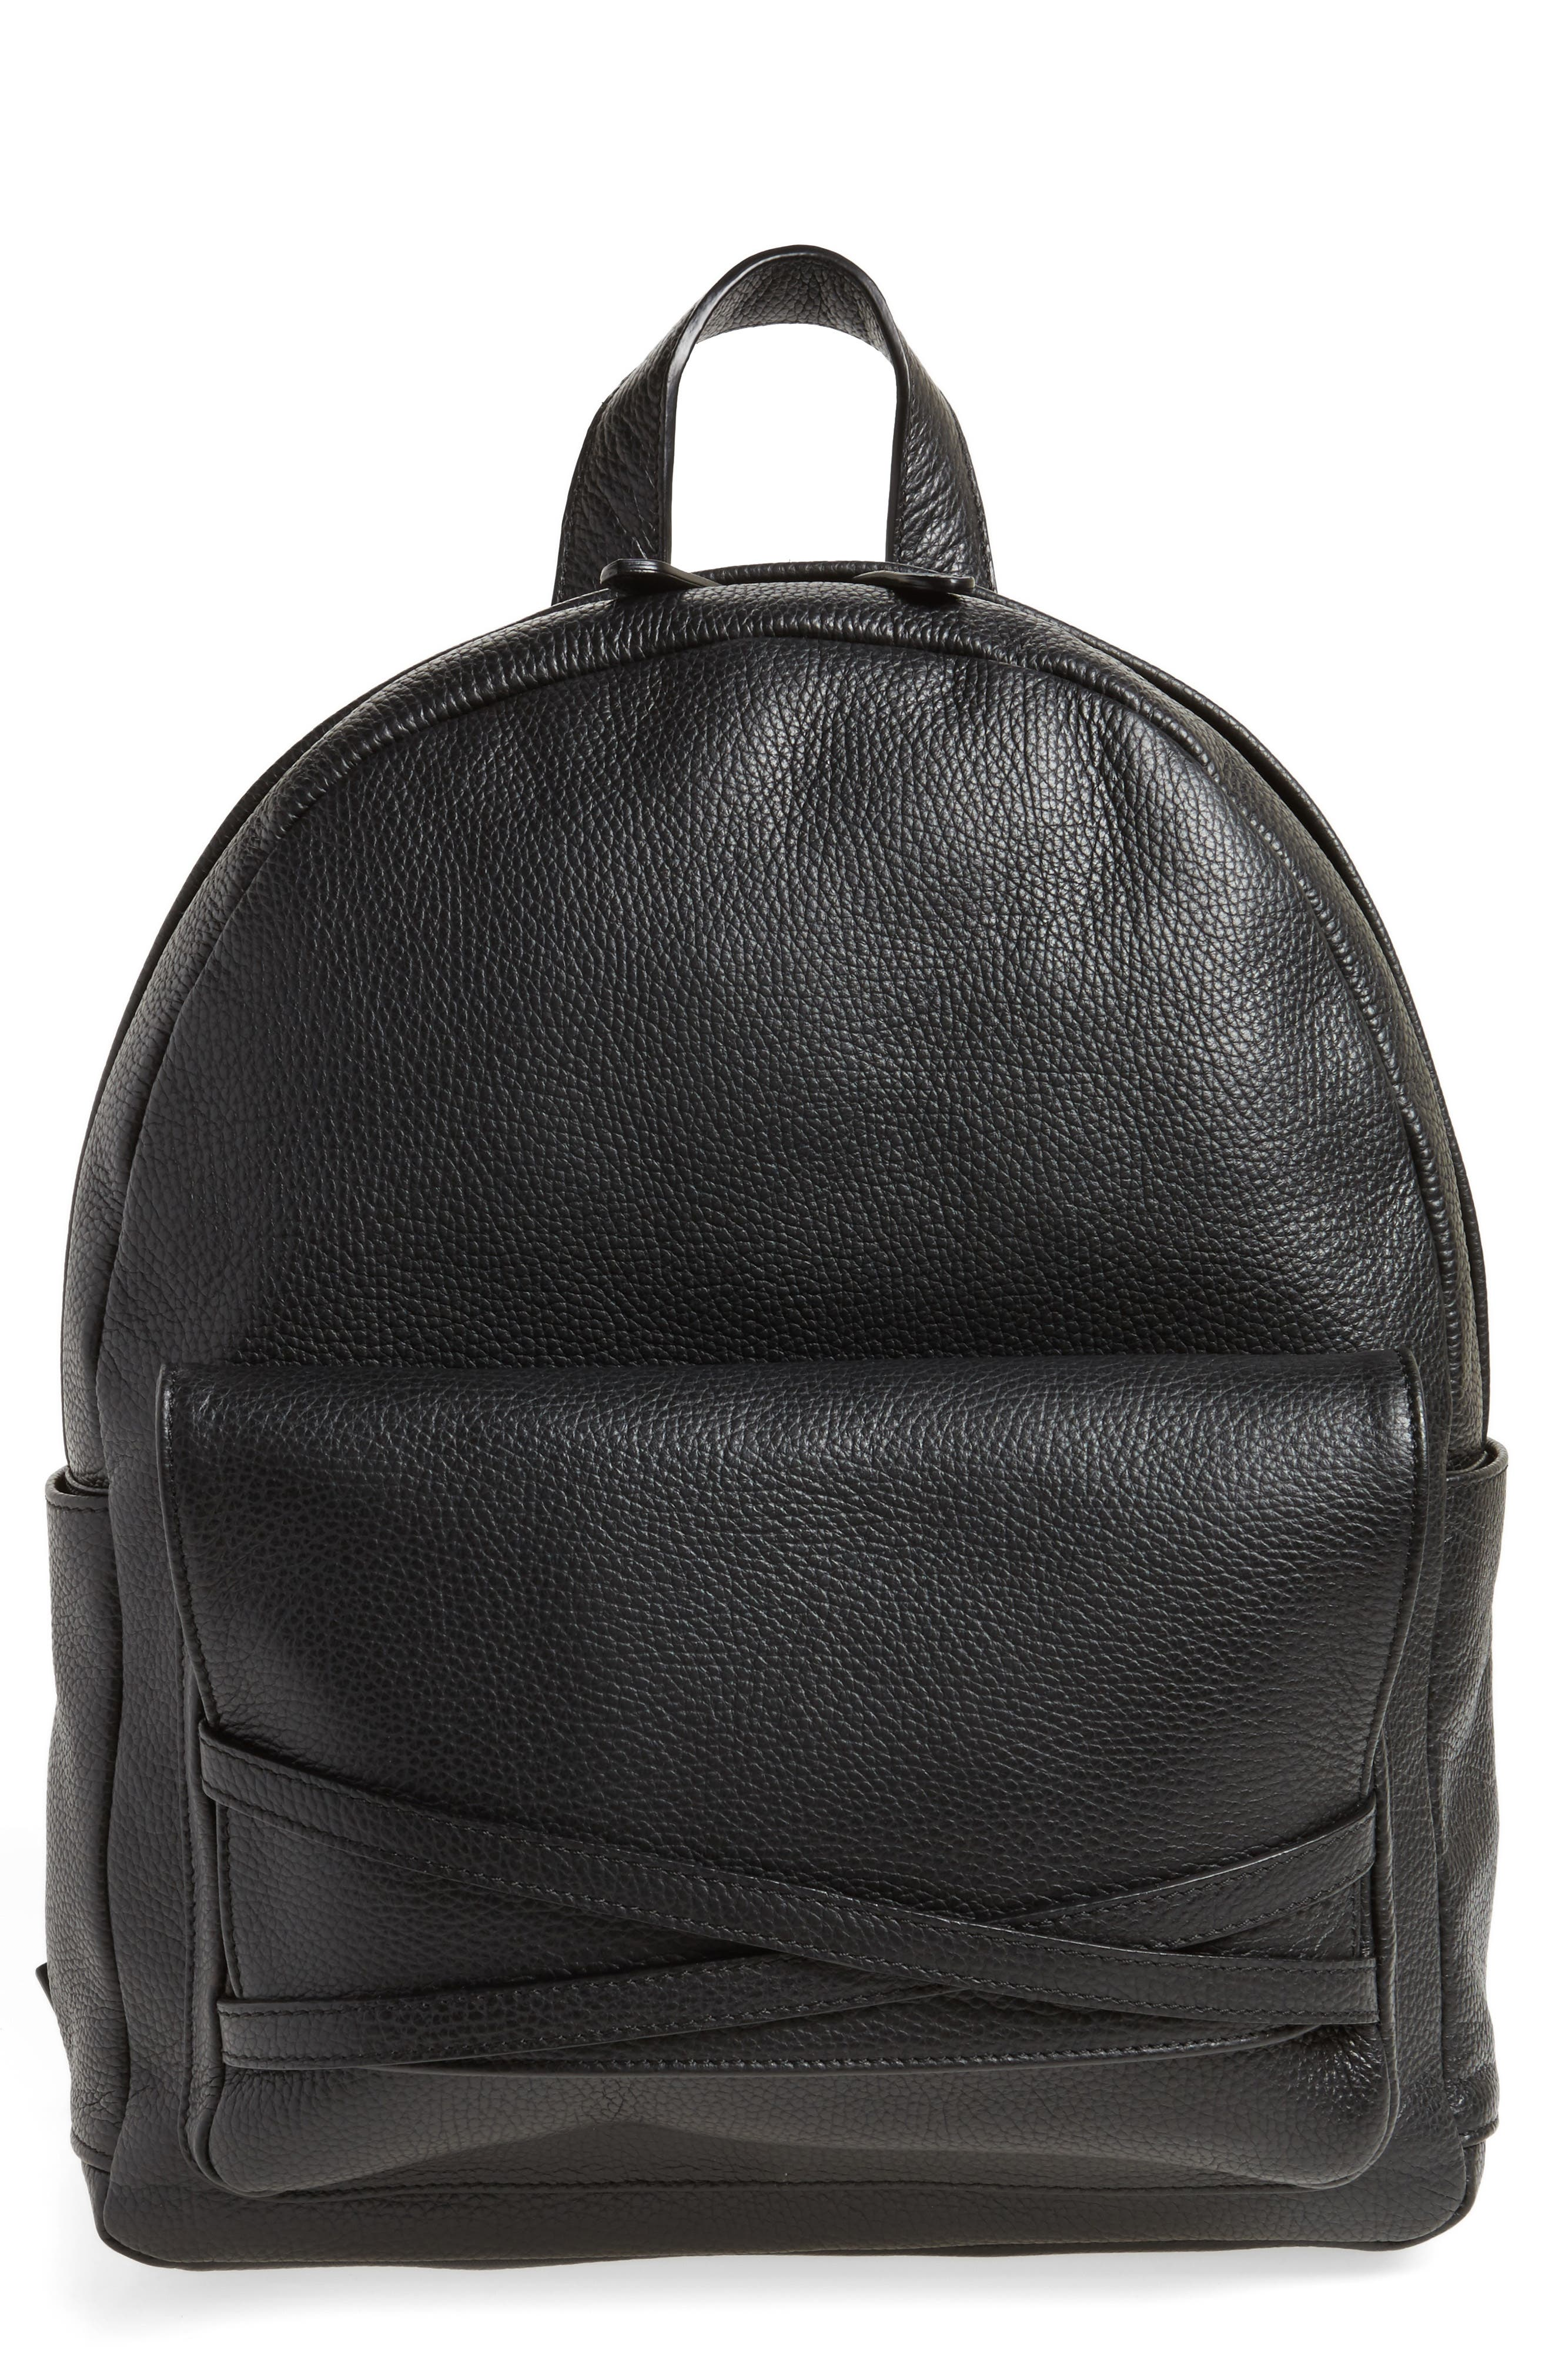 Leather Backpack,                         Main,                         color, Black